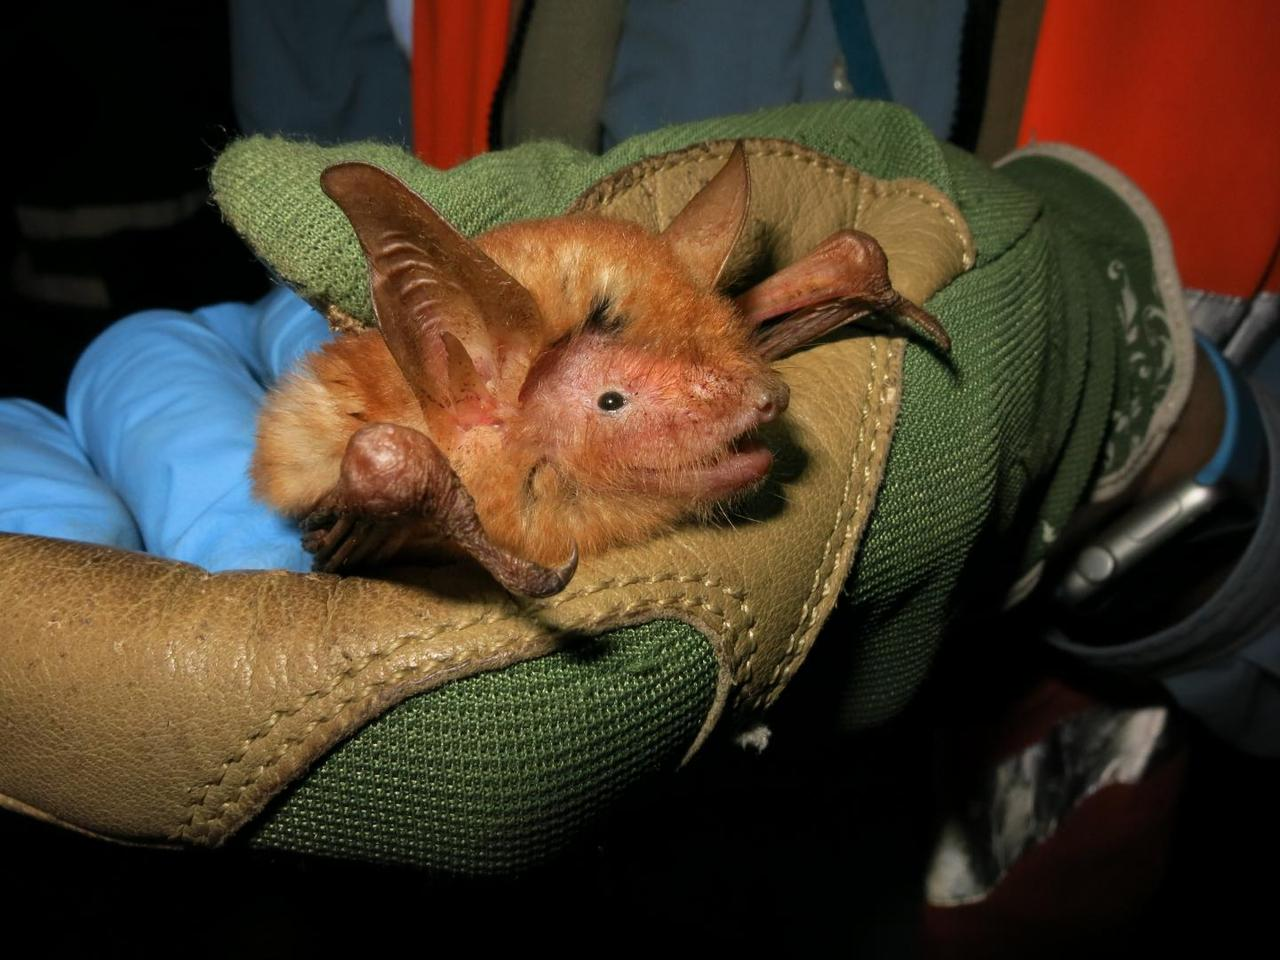 A photograph of the new bat species found in the Nimba Mountains